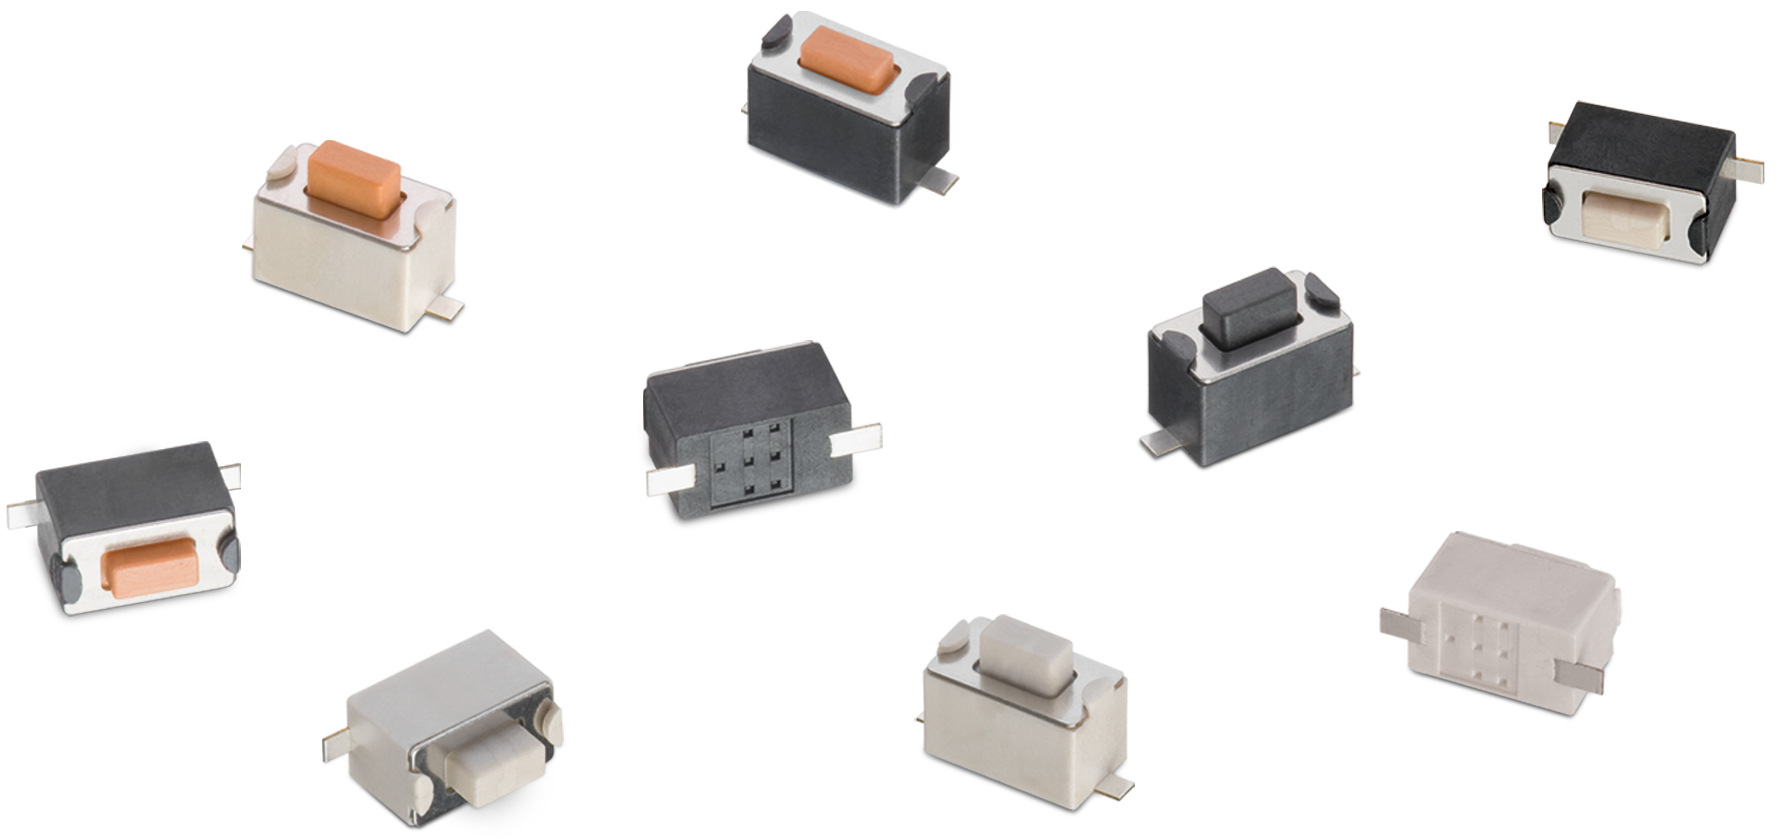 WS-TASV SMT Tact Switch 6.0x3.5 mm Picture